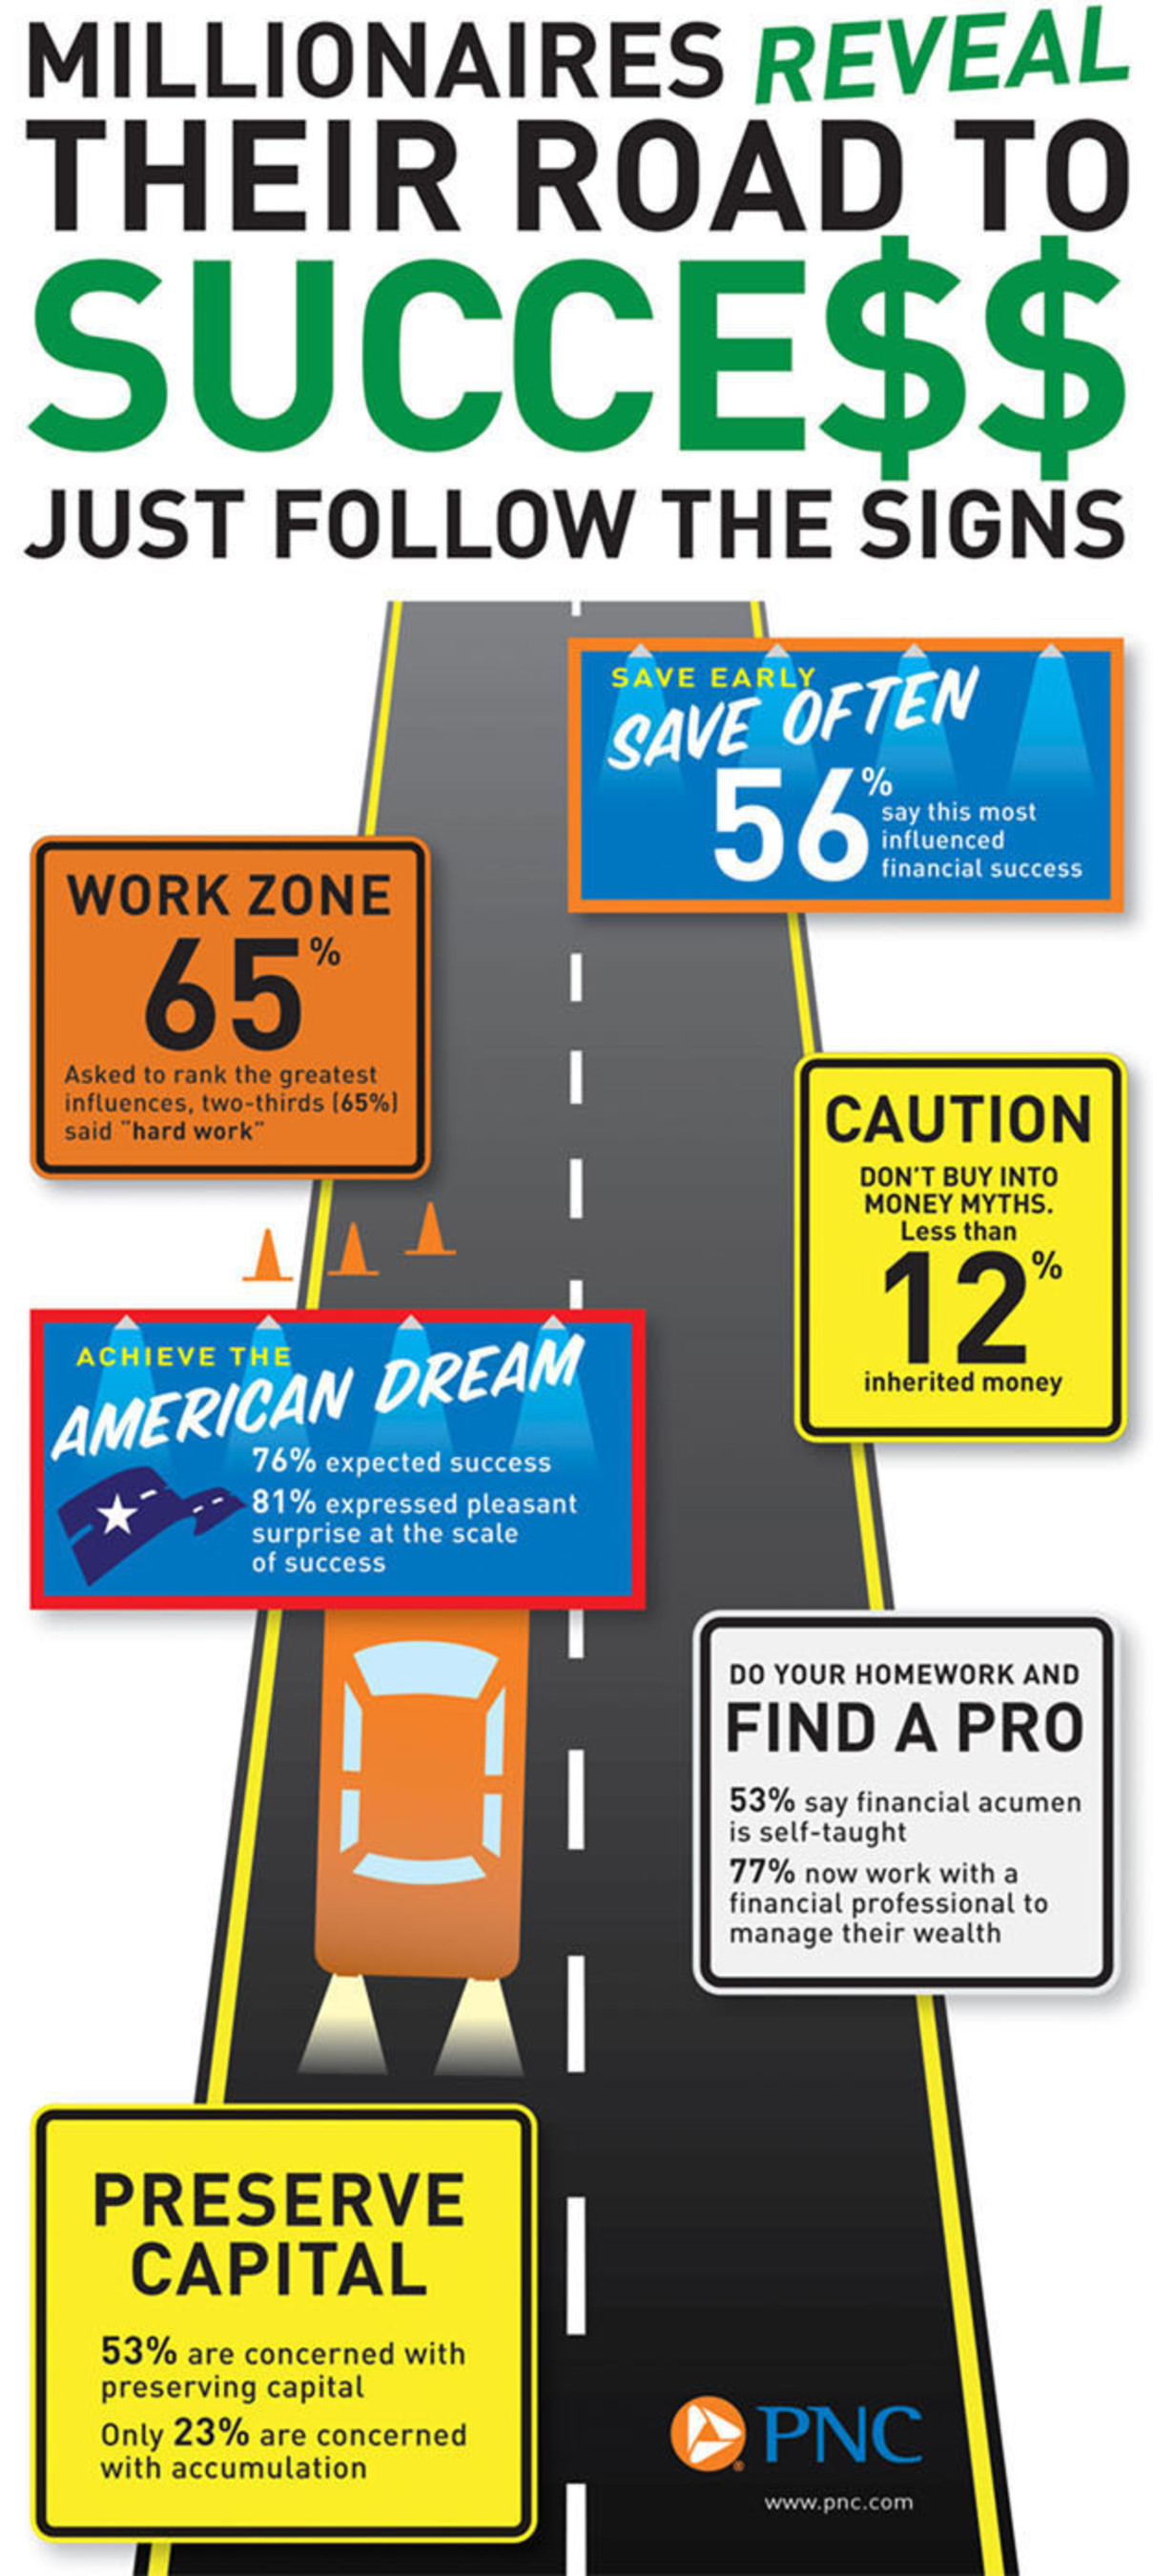 Millionaires Reveal Their Road To Success, Just Follow The Signs. (PRNewsFoto/PNC Wealth Management) ...